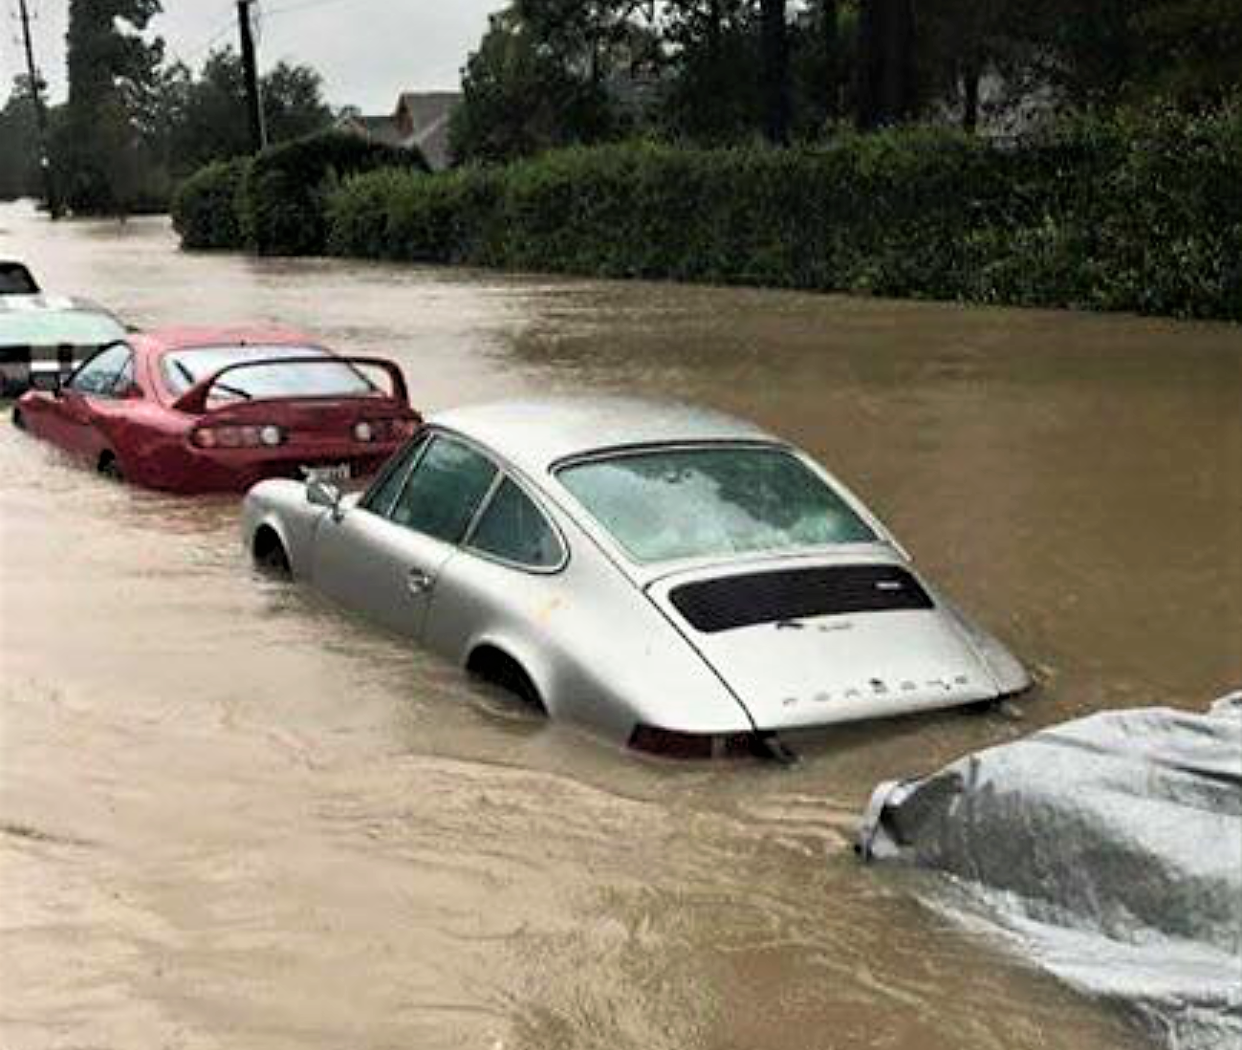 A Porsche 911 And Toyota Supra Are Hip Deep In Water In This Facebook Photo